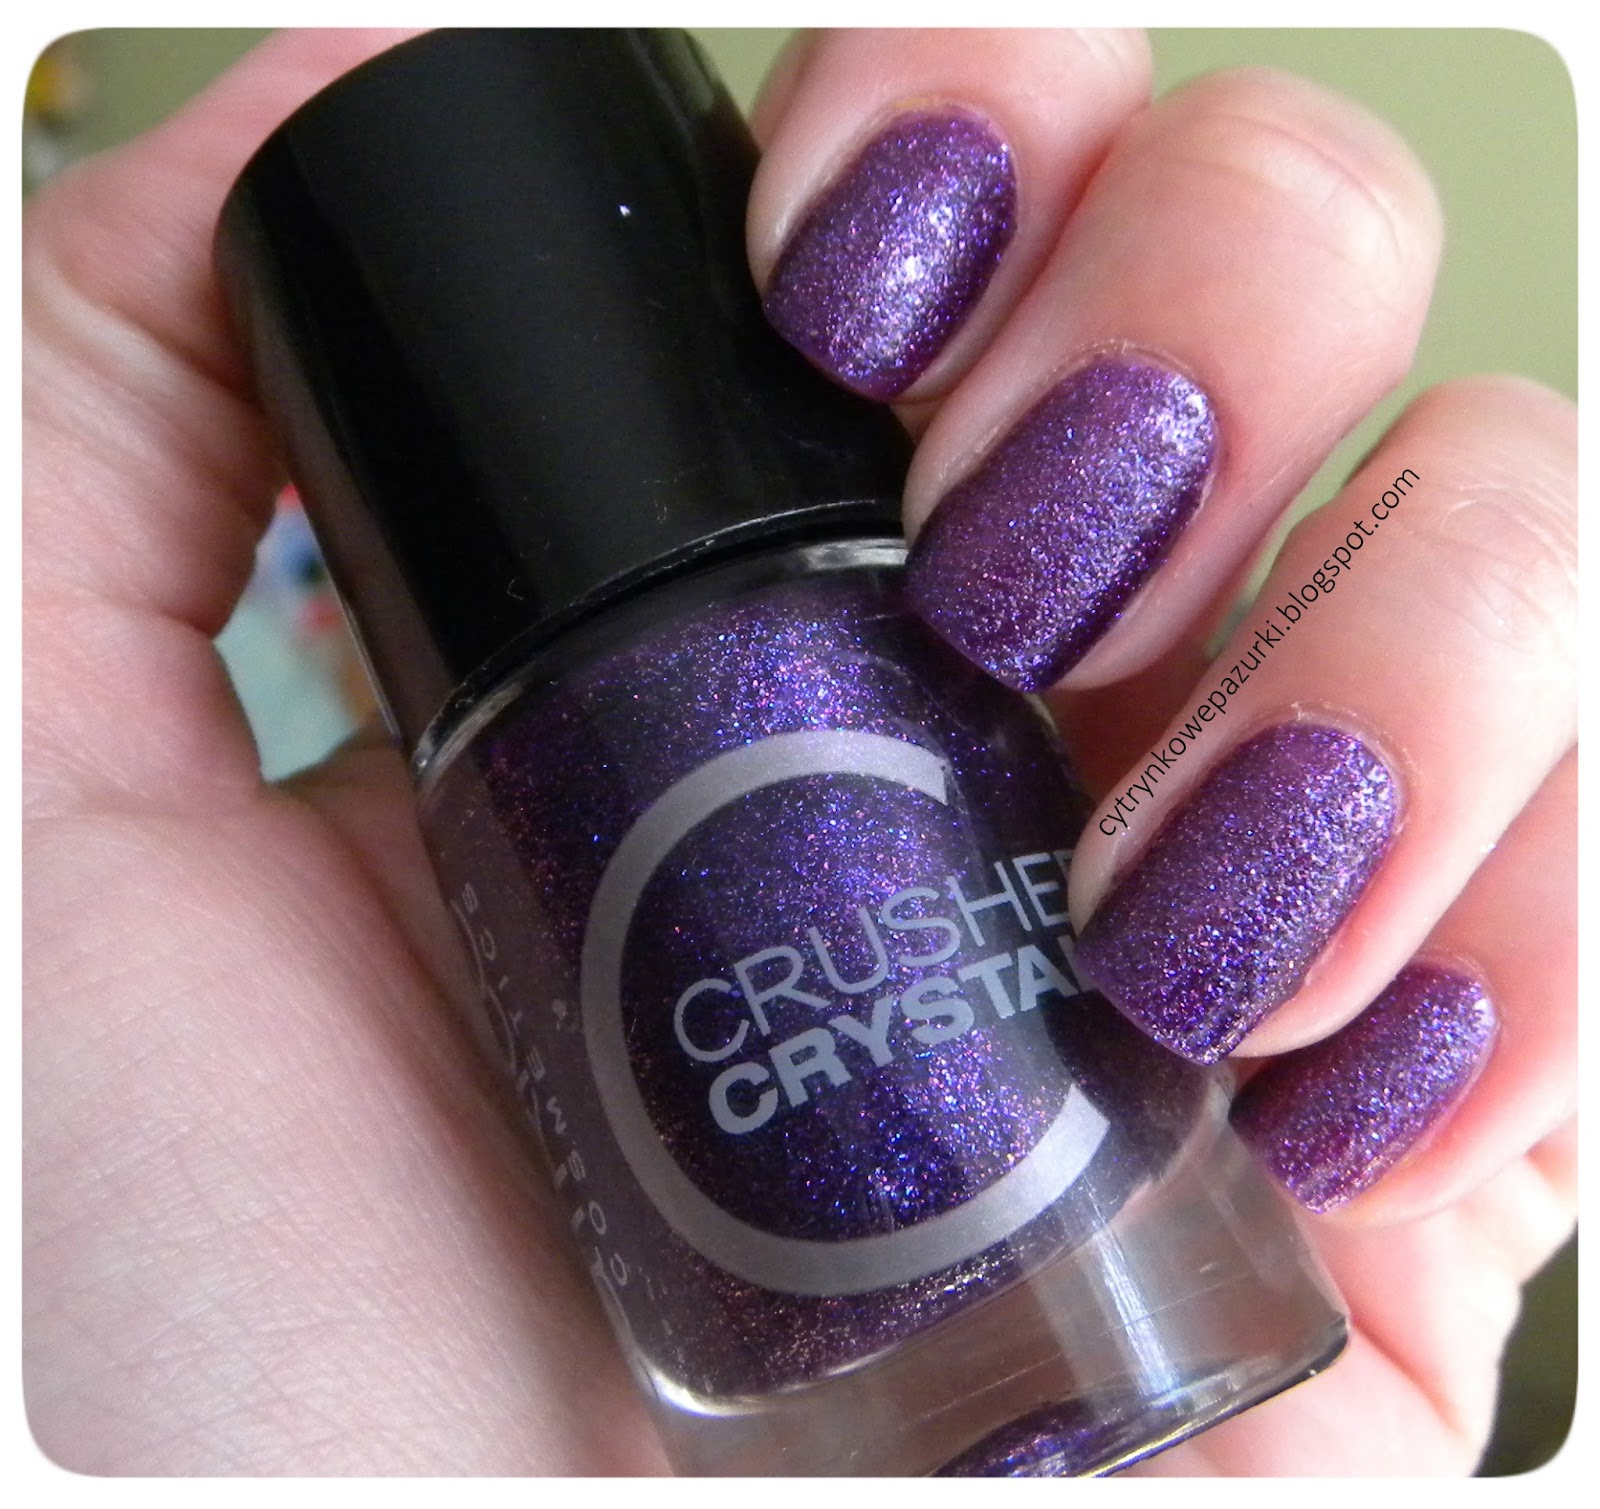 Catrice - Crushed Crystals 02 PLUMdogMillionaire